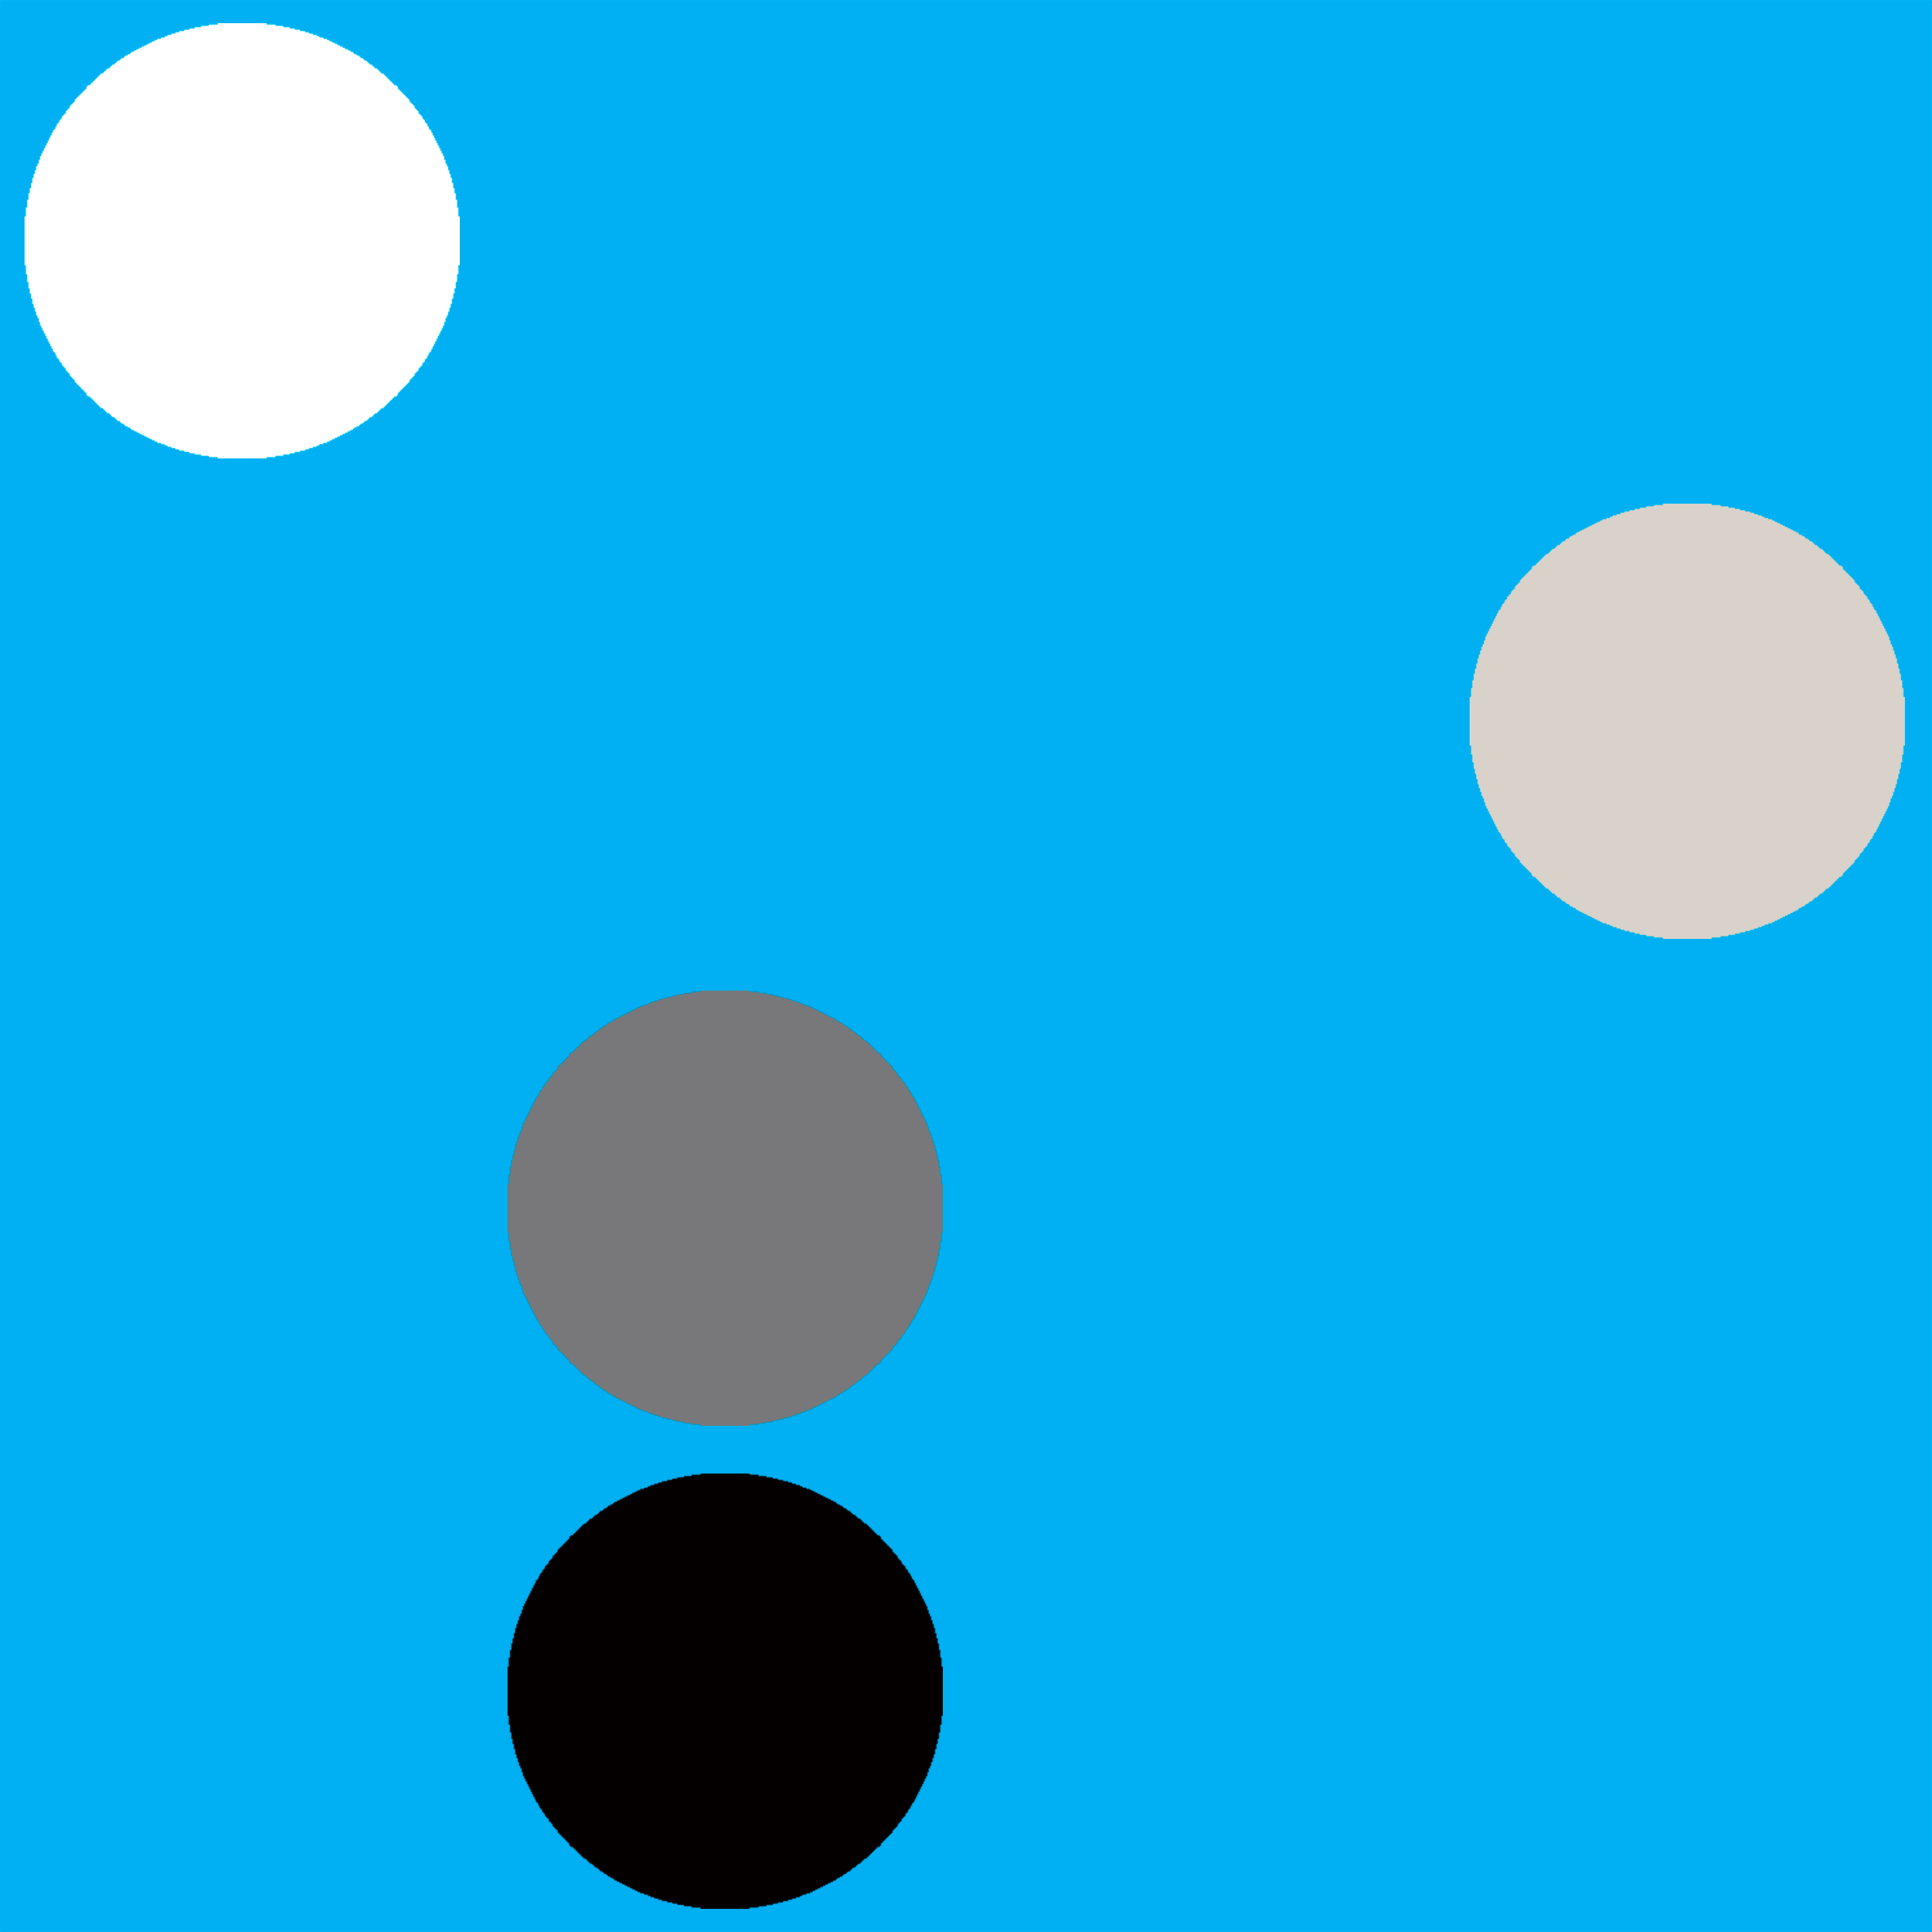 UNICEF_ColorPrimary@2x.png